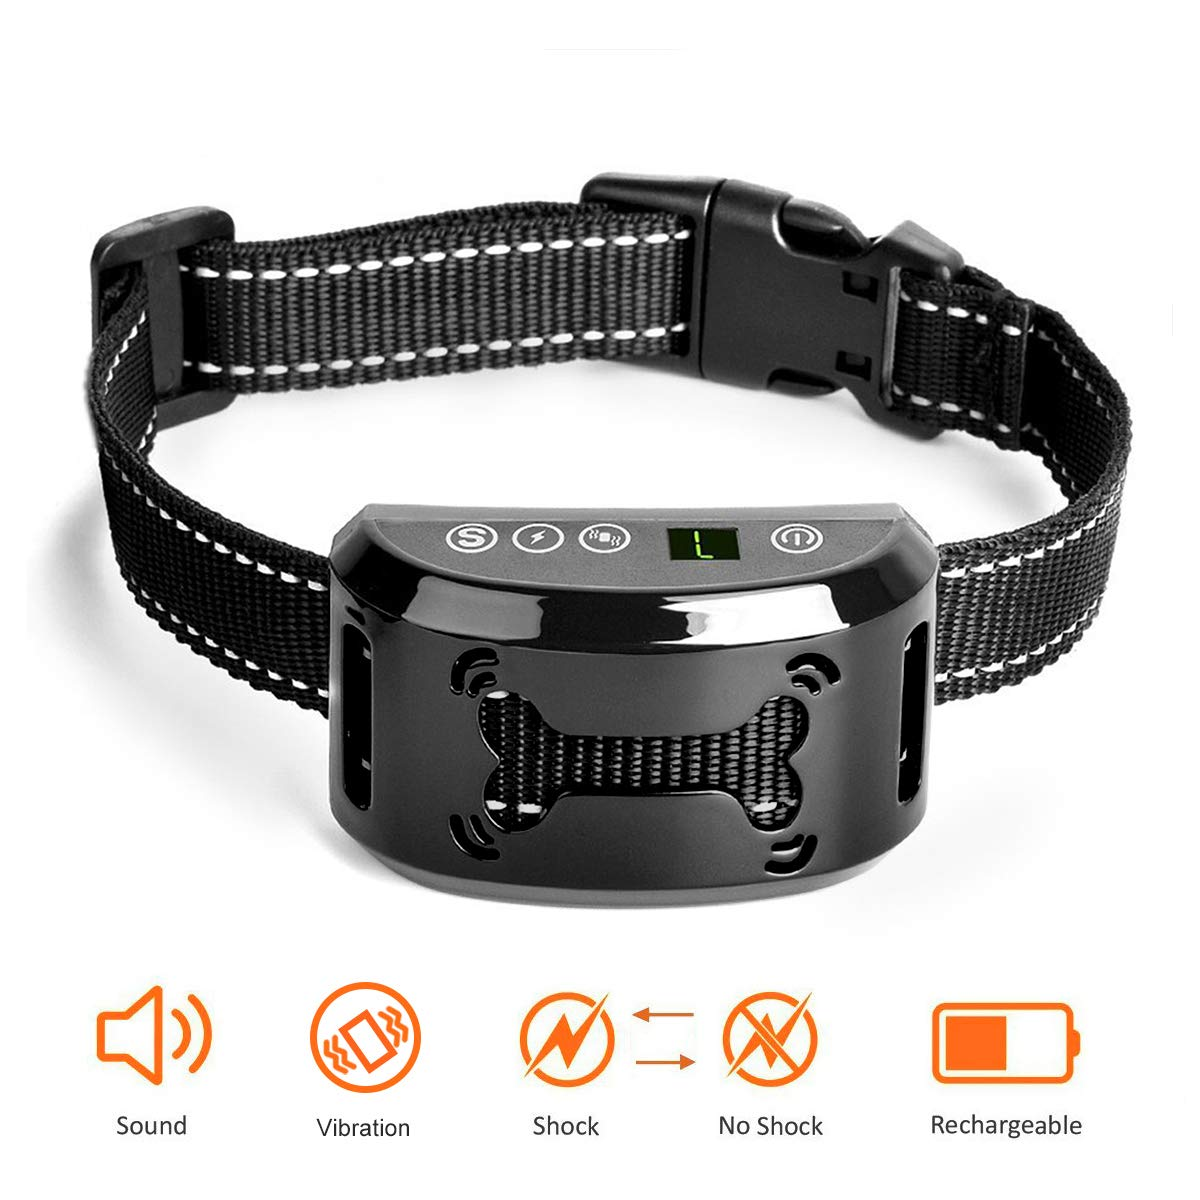 Dog Bark Collar – No Bark Collar – Stop Barking with Beep Vibration Harmless Shock, Rechargeable and Waterproof Humane No Bark Control for Small Medium and Large Dog